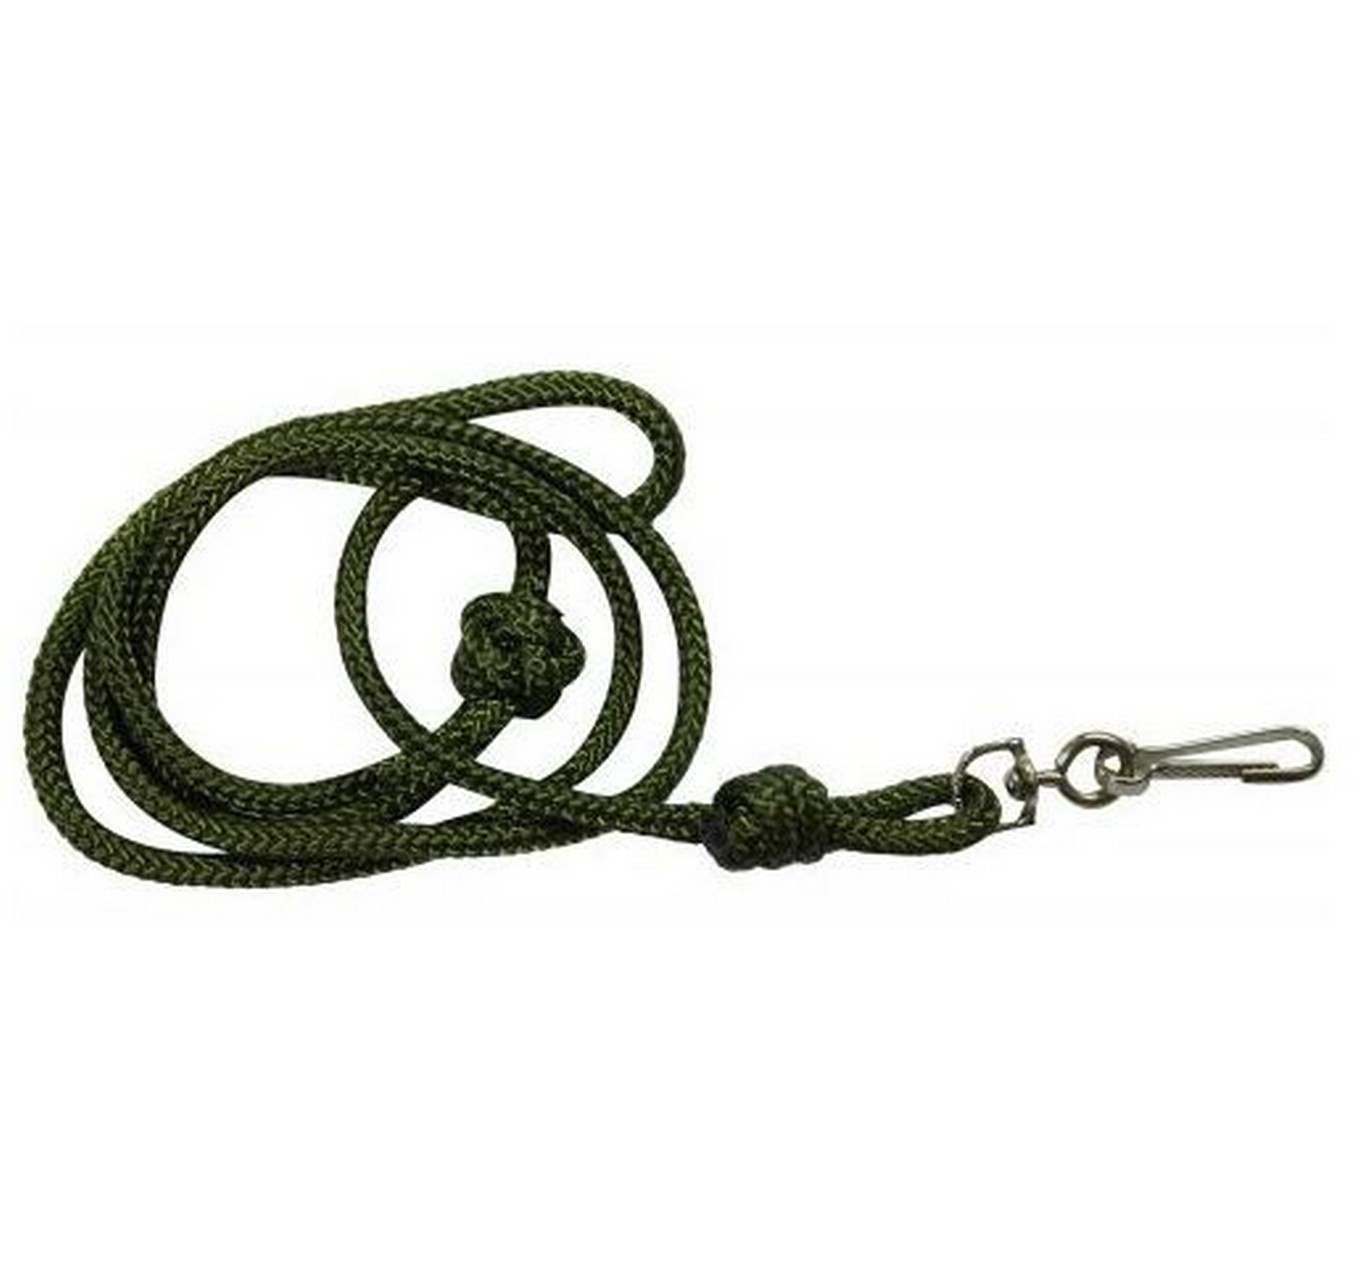 Lanyard - Traditional 3mm